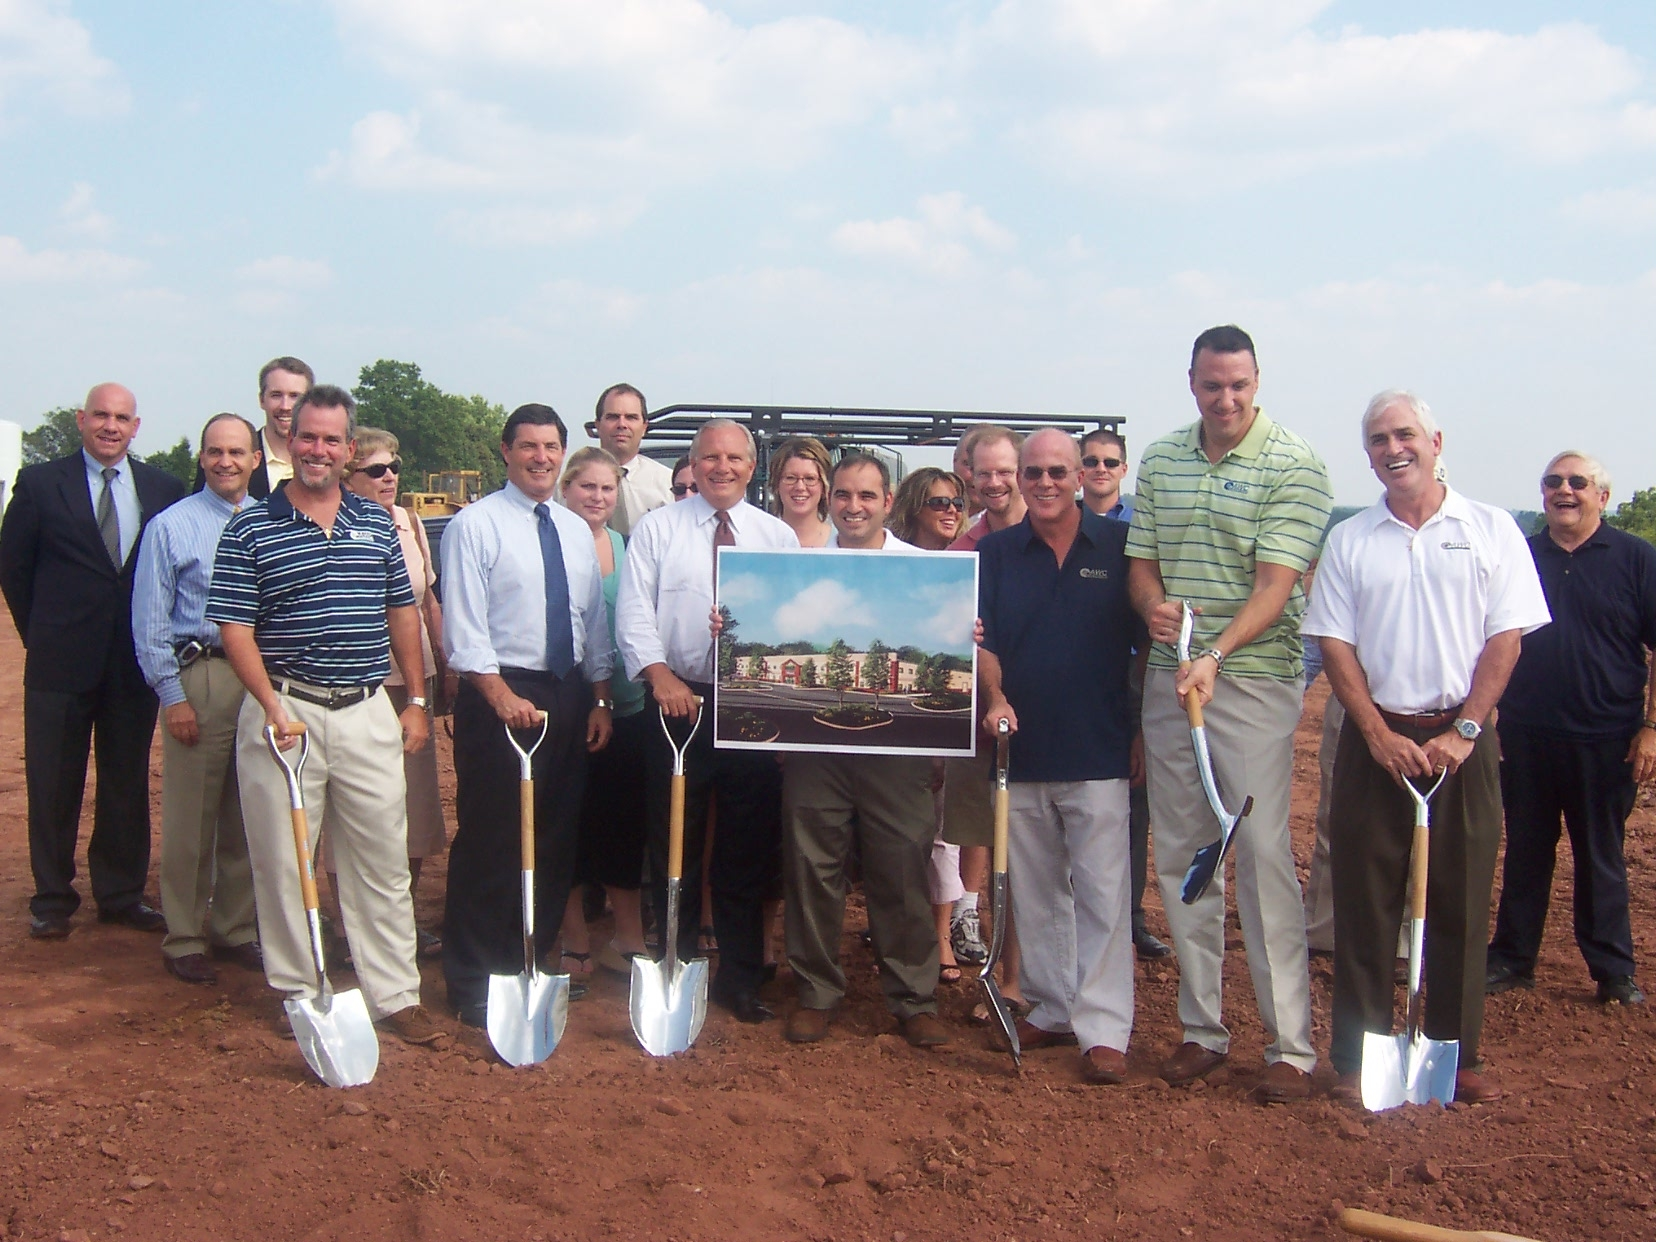 File:Gerlach at Allied Wire & Cable Groundbreaking Ceremony.jpg ...